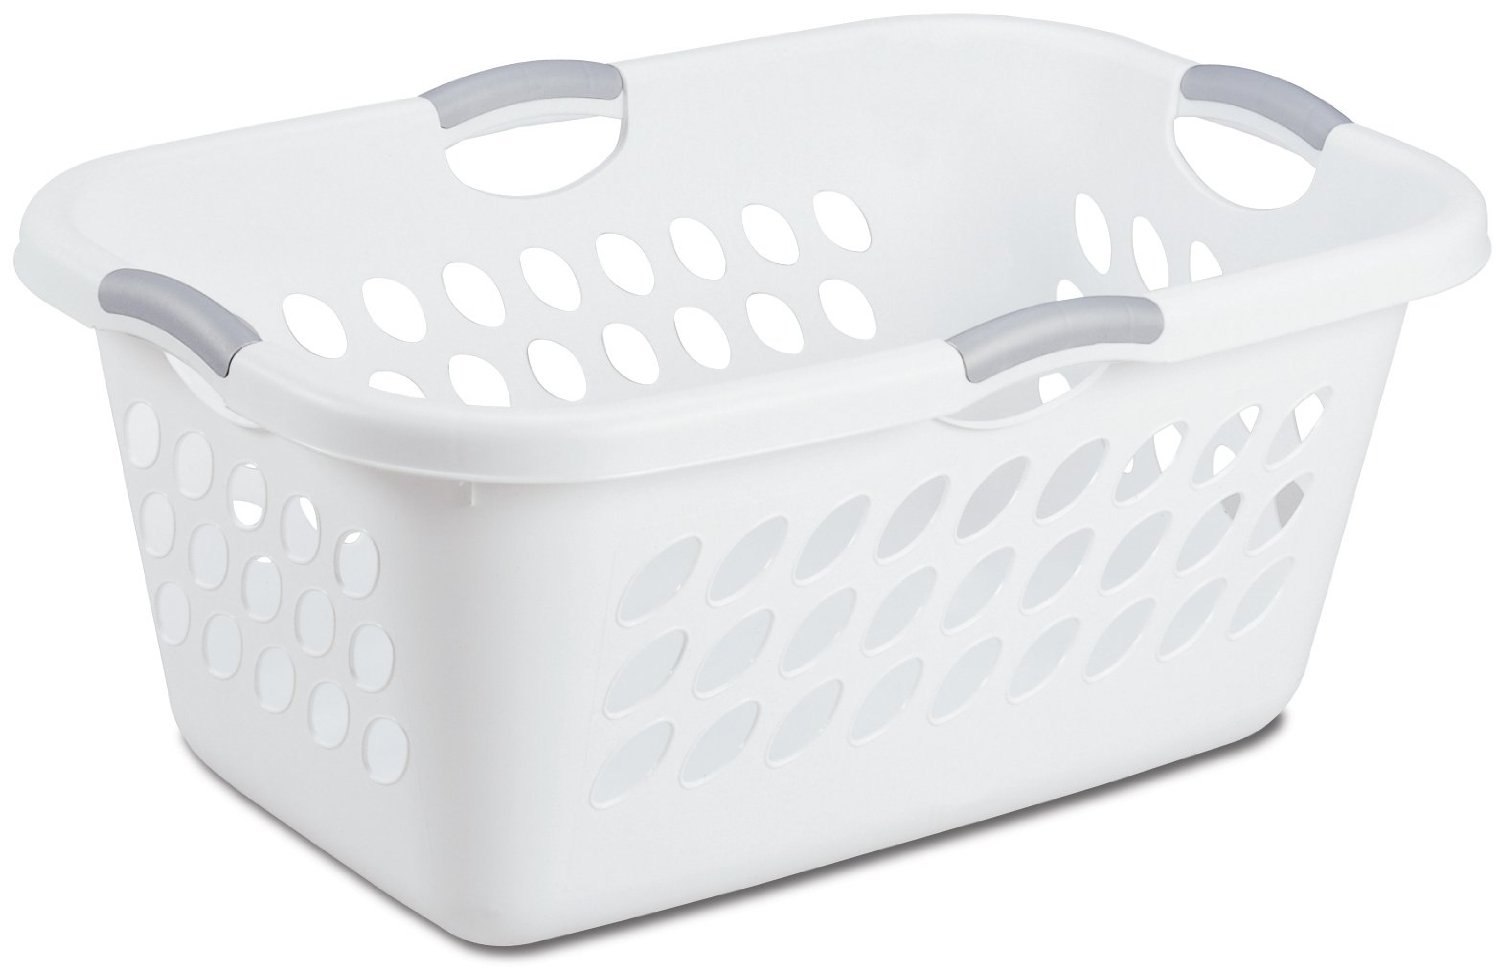 The customer could request that we ship baskets that are no more than